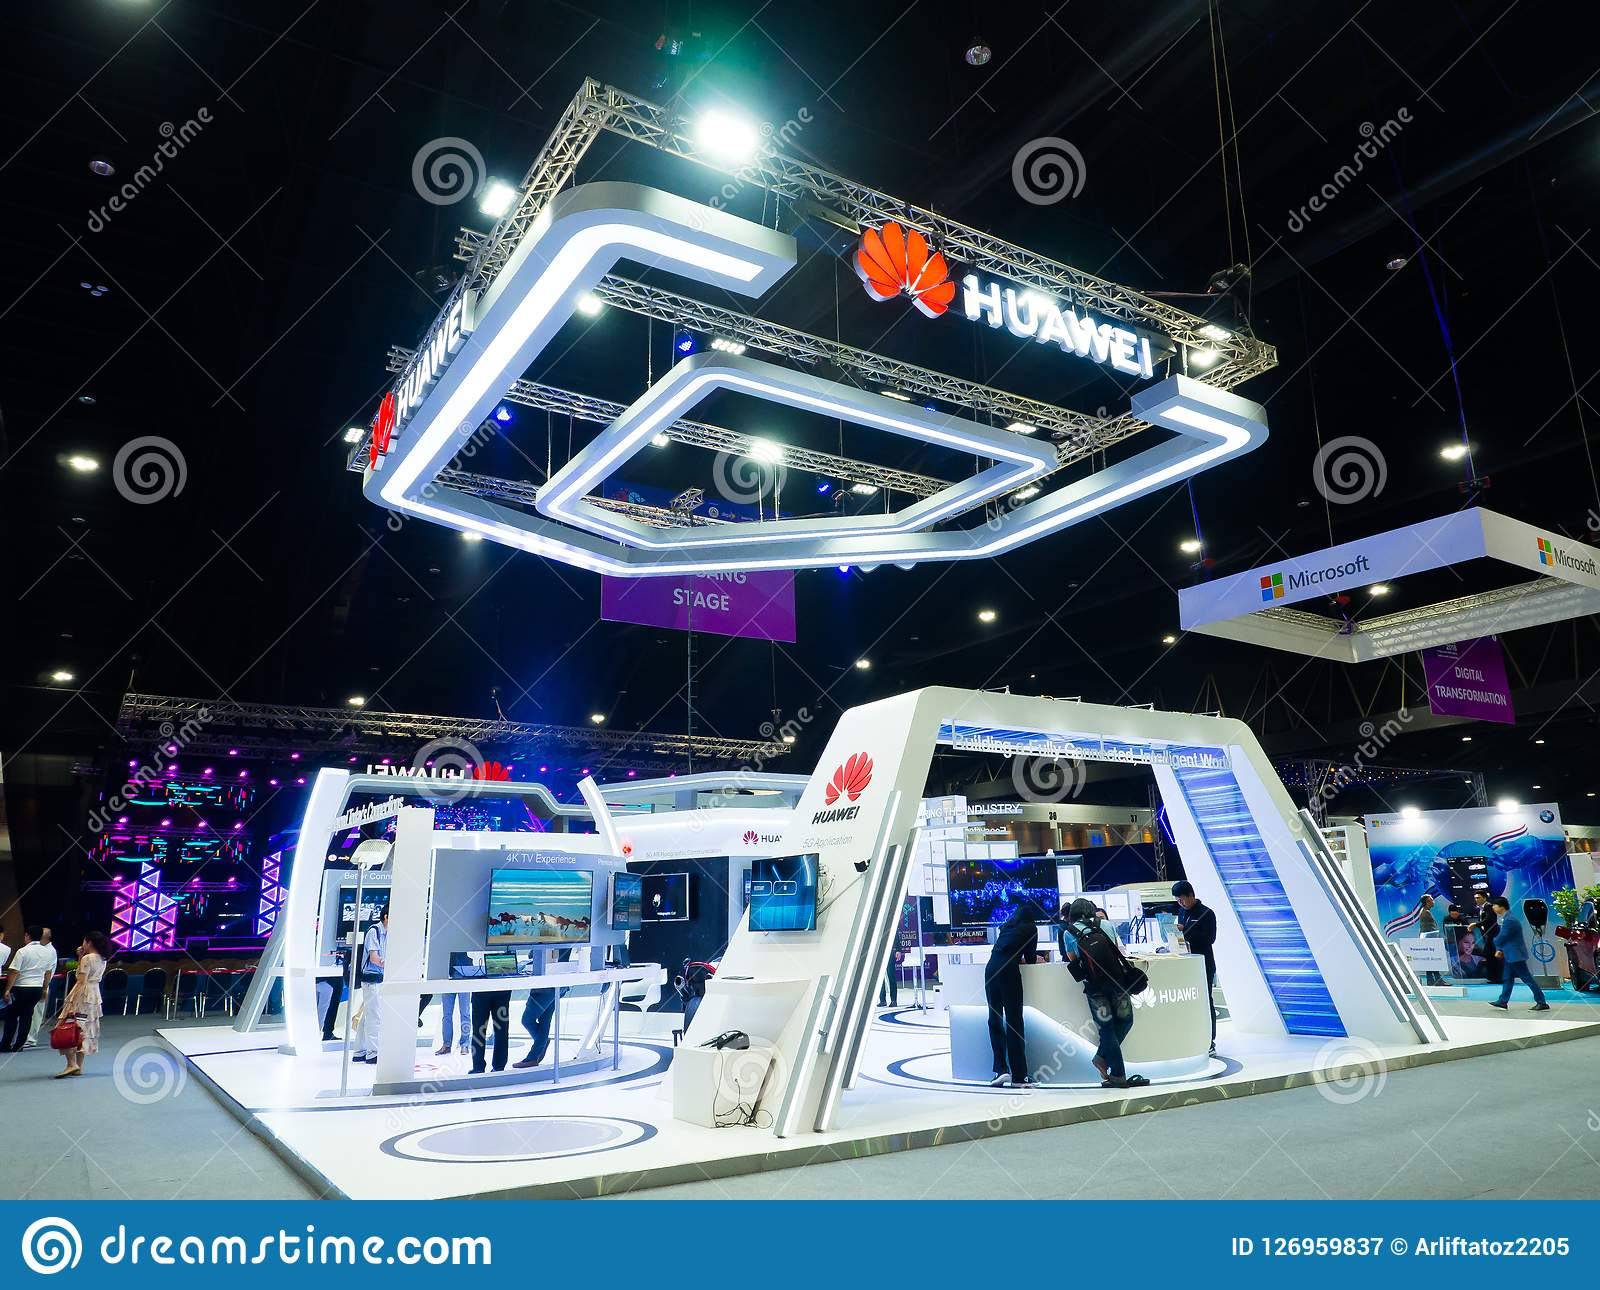 Huawei Technologies Co., Ltd. is a Chinese multinational networking, telecommunications equipment at company Exhibition booth.